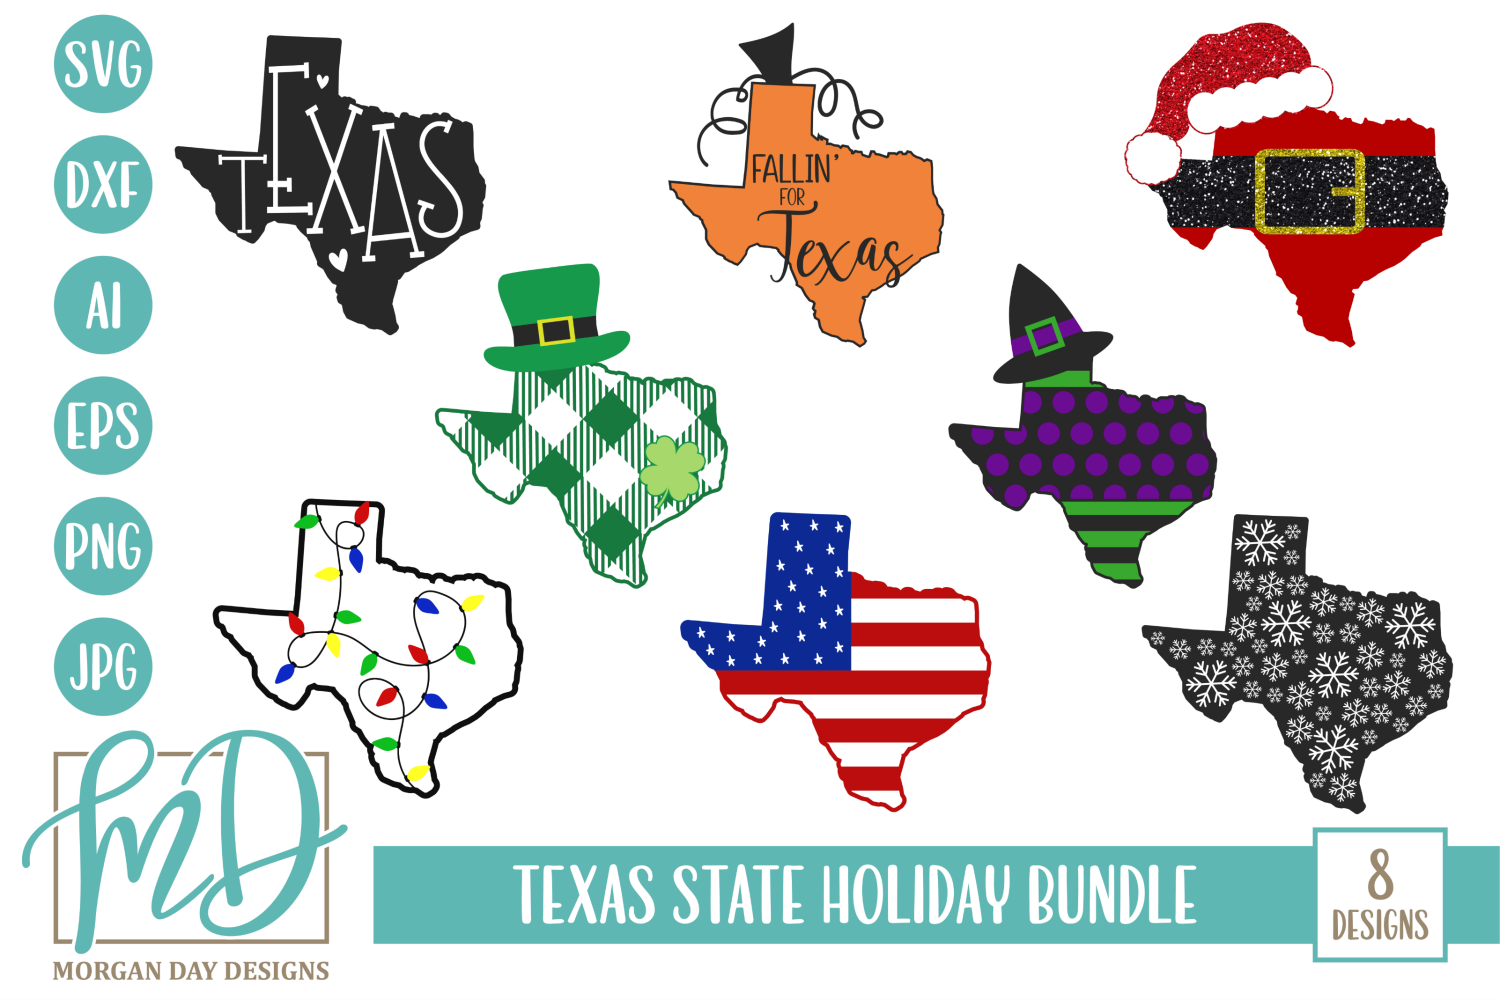 Download Free Texas Holiday Bundle Graphic By Morgan Day Designs Creative for Cricut Explore, Silhouette and other cutting machines.